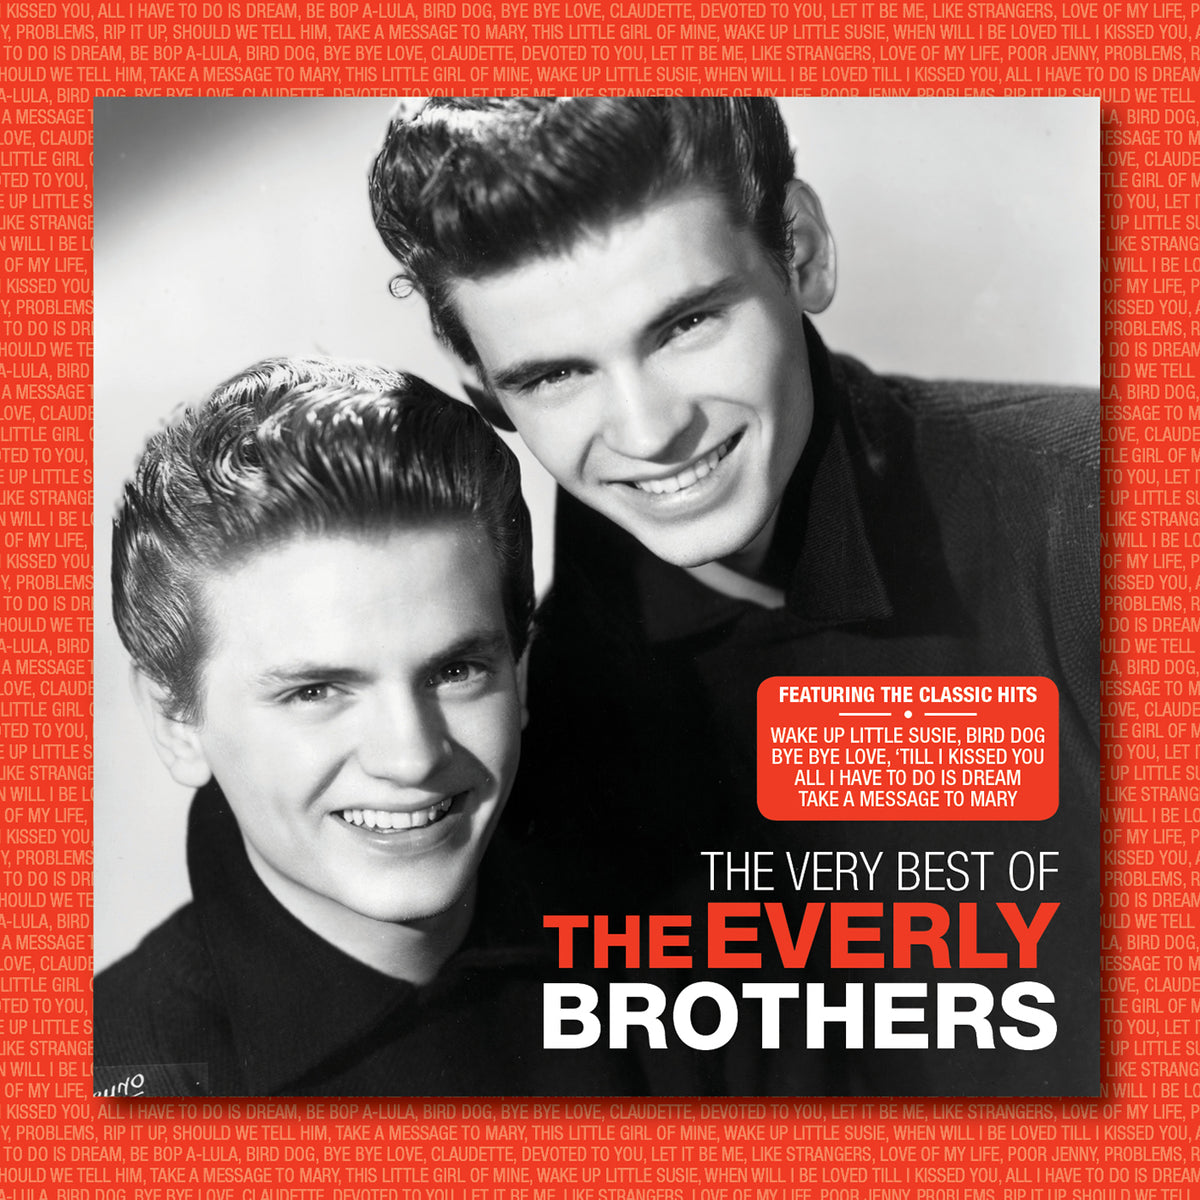 FANFARE162 - THE EVERLY BROTHERS - THE V